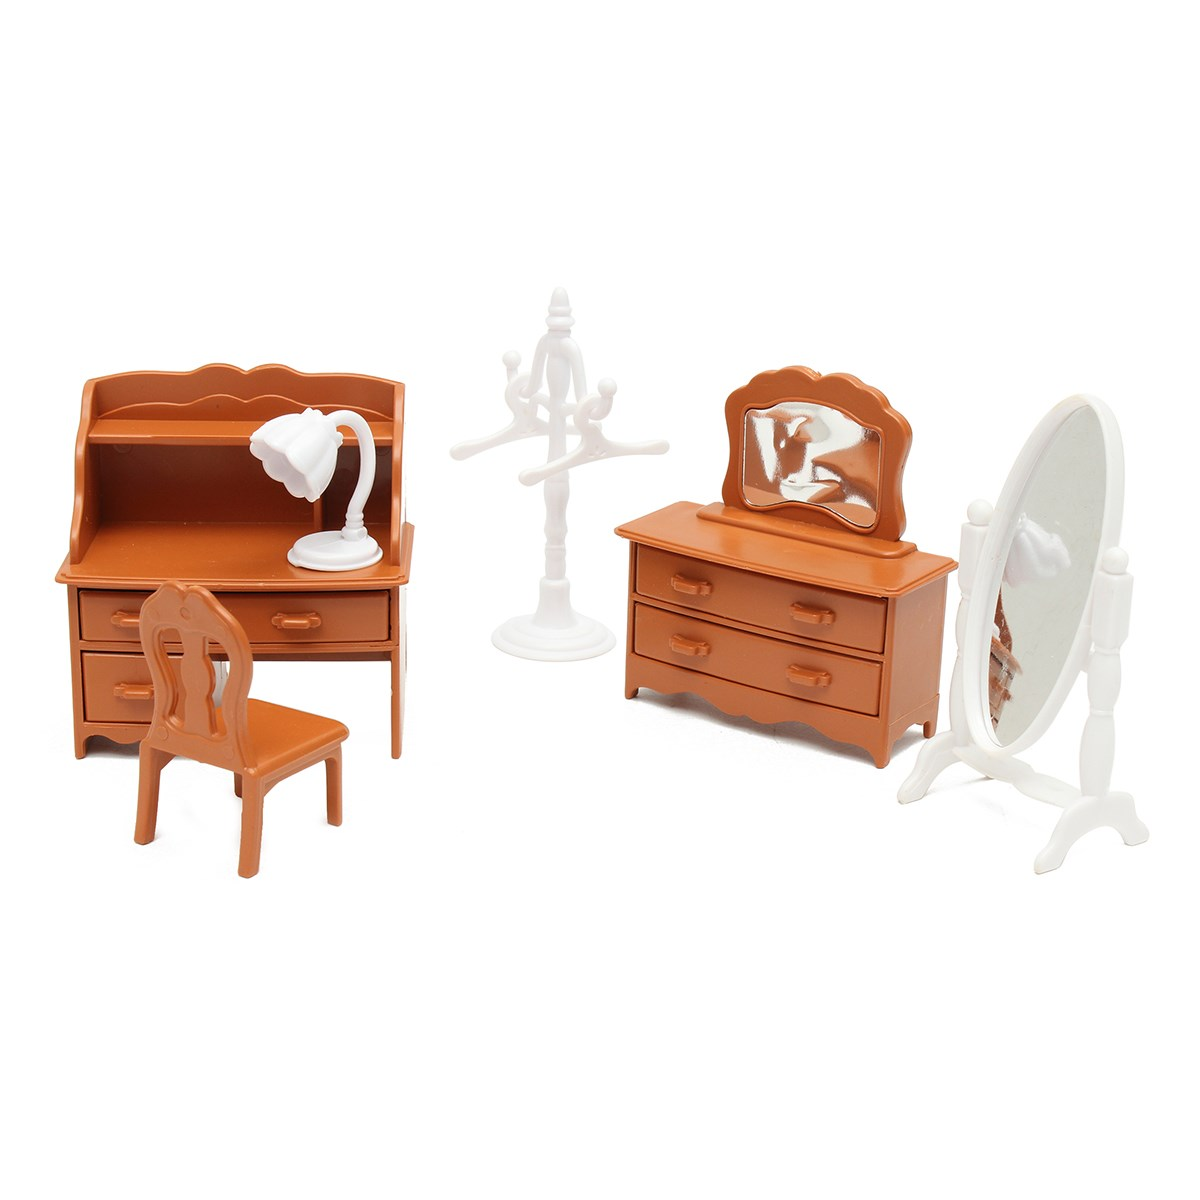 mini furniture sets. Miniature Living Room Dressing Table Furniture Sets For Mini Children DollHouse Home Decor Kids Toy Doll House Toys Gift-in Houses From \u0026 Hobbies O